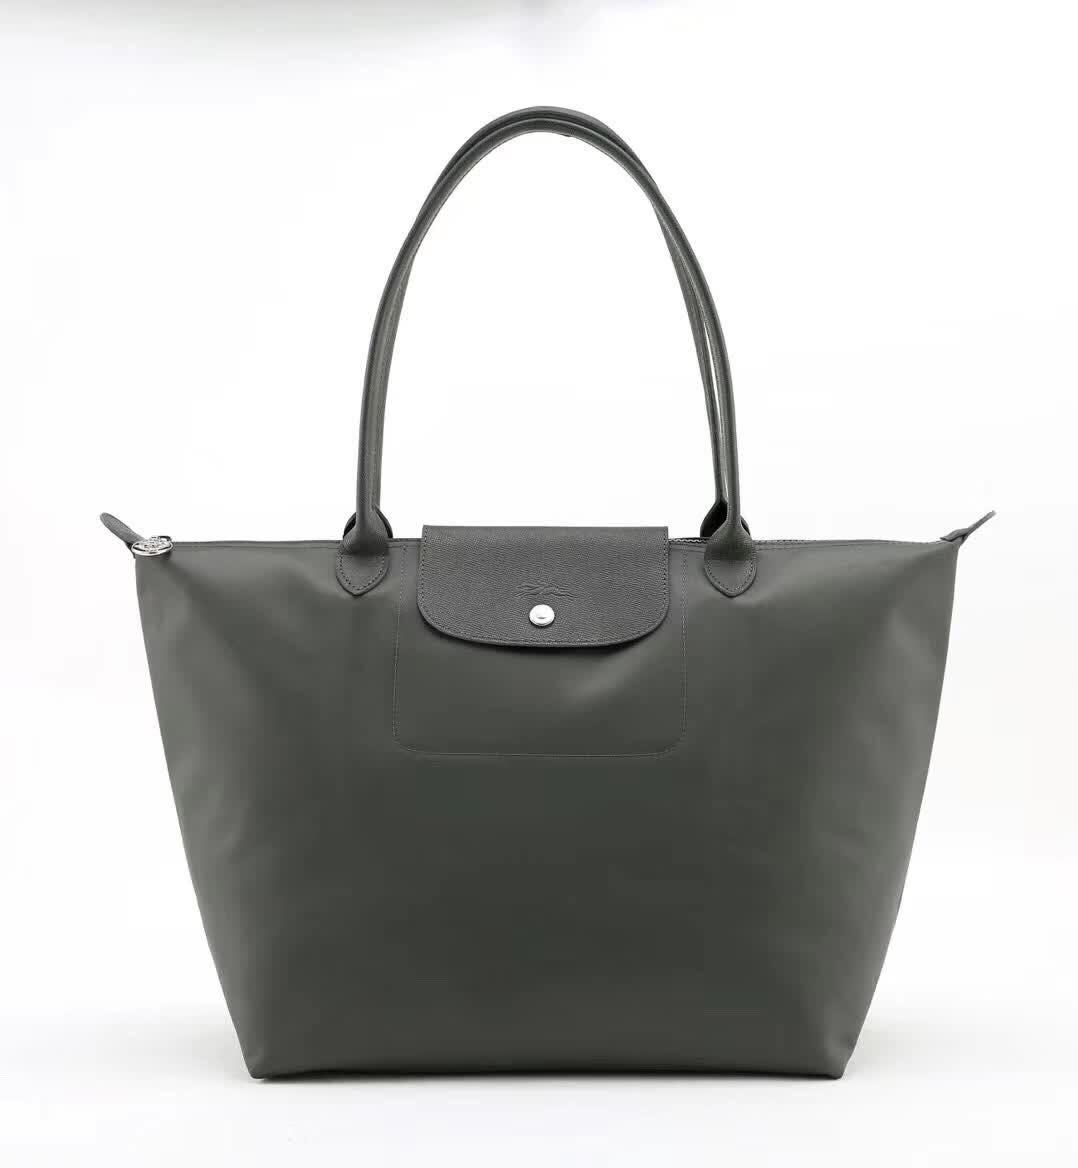 b4be4684e80 100% AUTHENTIC LONGCHAMP NEO 1899 Large / 2605 Small - Made in France